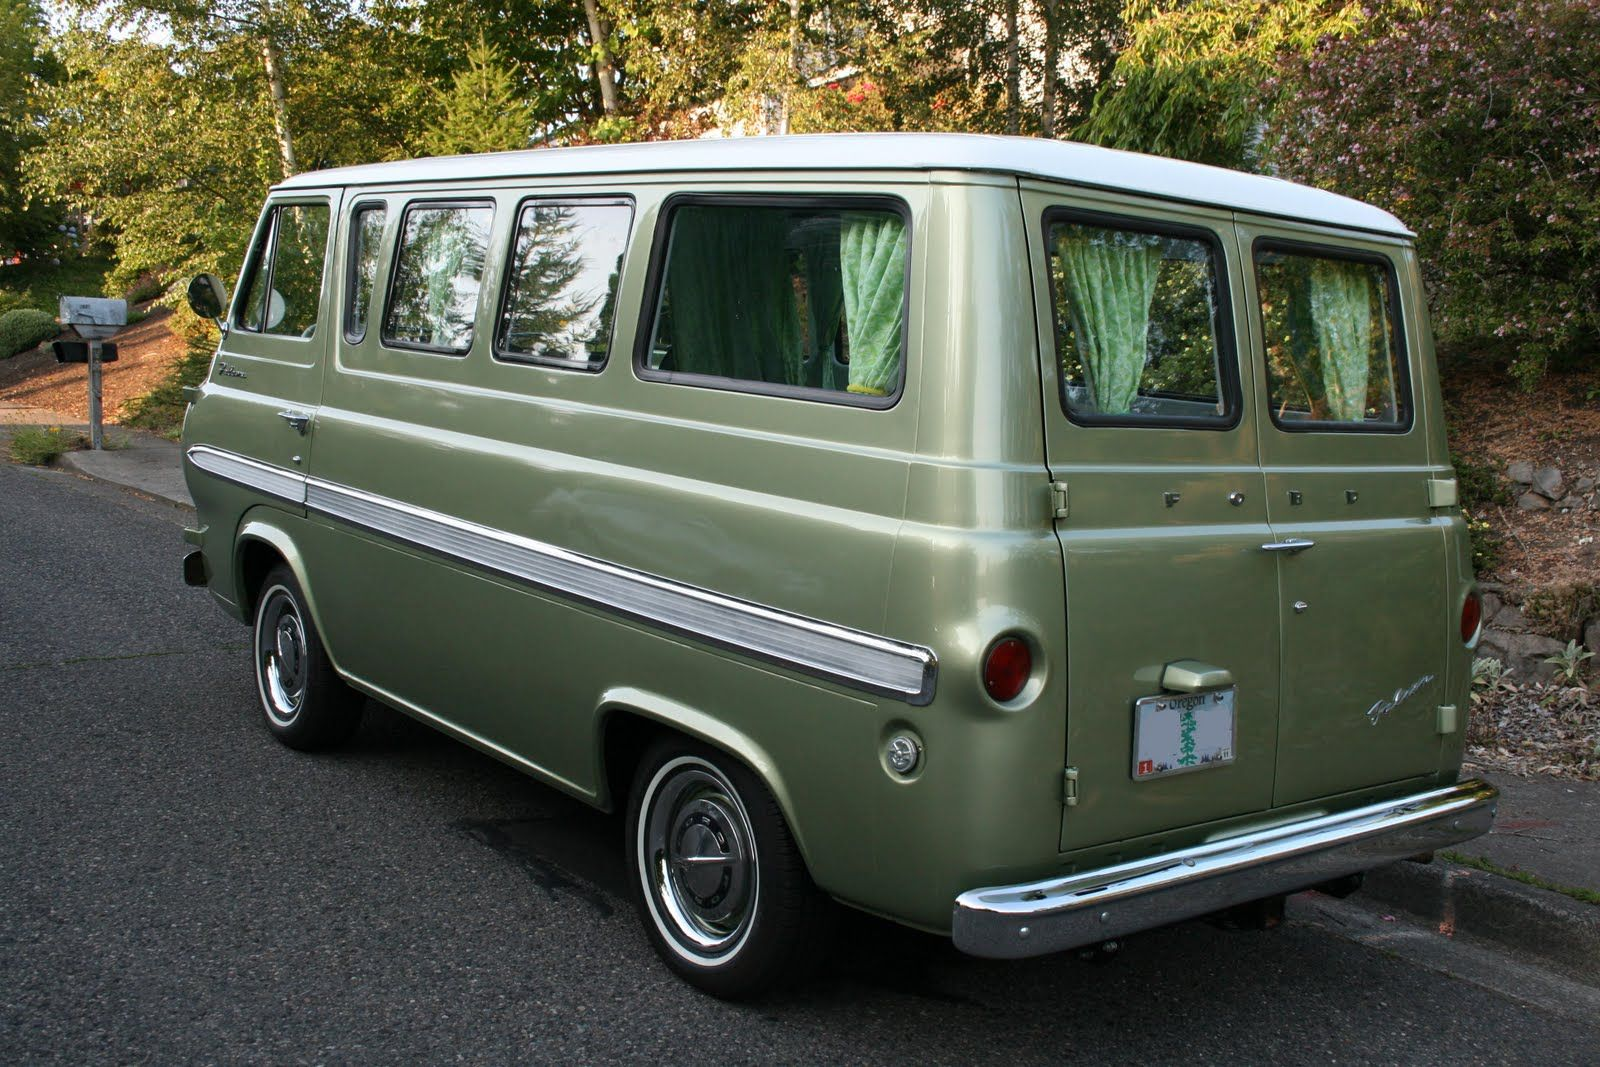 1960s Ford Falcon Econoline Van Another Of My Dream Cars Perhaps